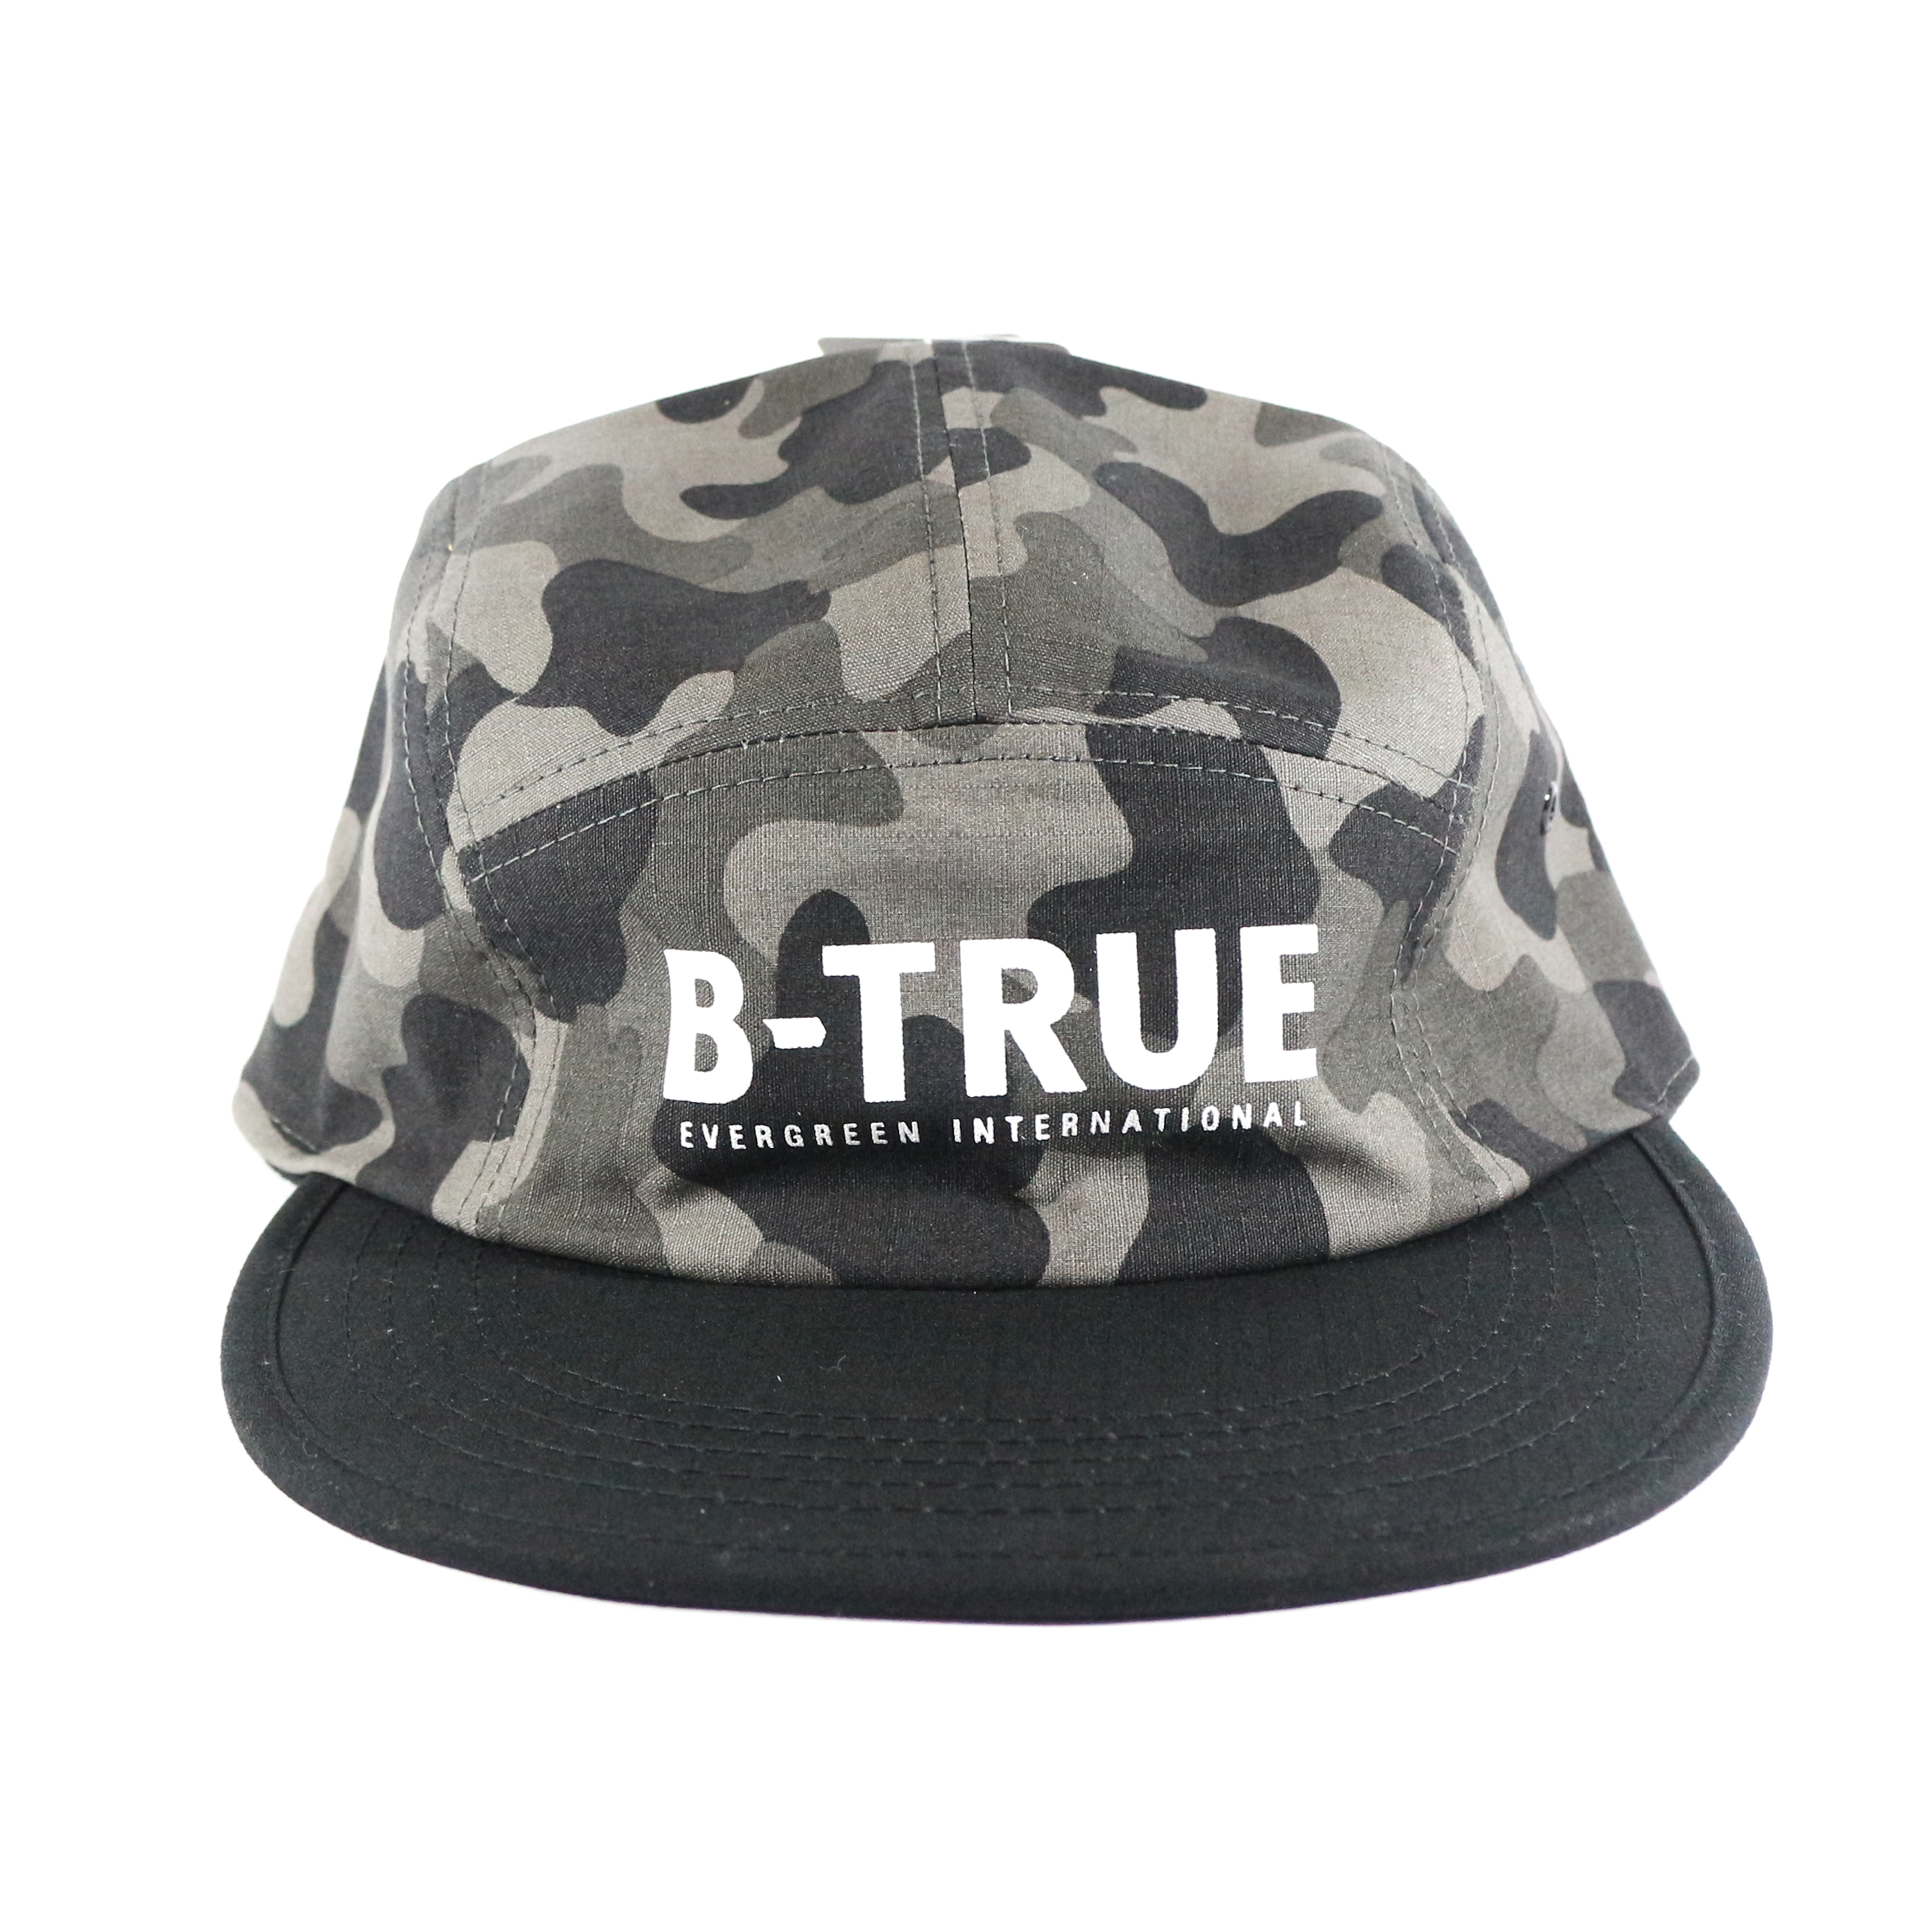 Evergreen Cap Jet Cap B-True Japan Free Size Black Camou (8852)